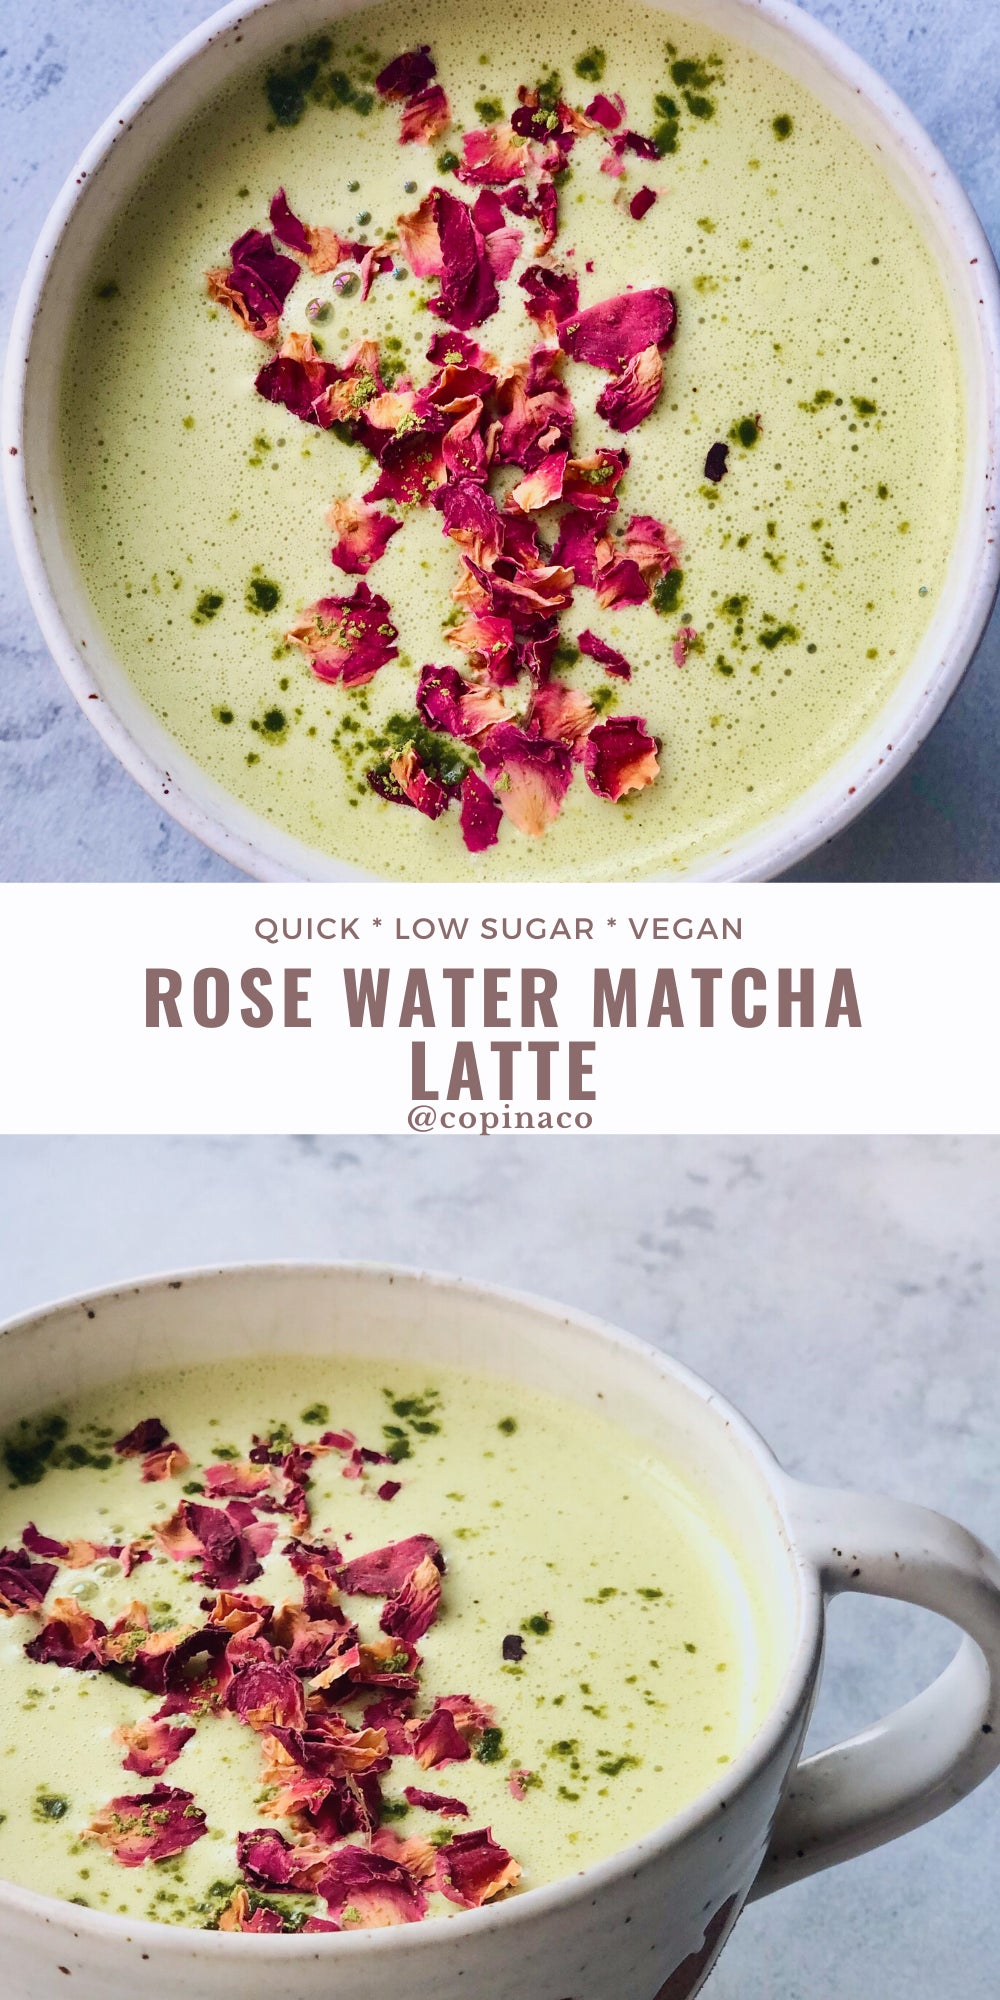 Rose Water Matcha Latte